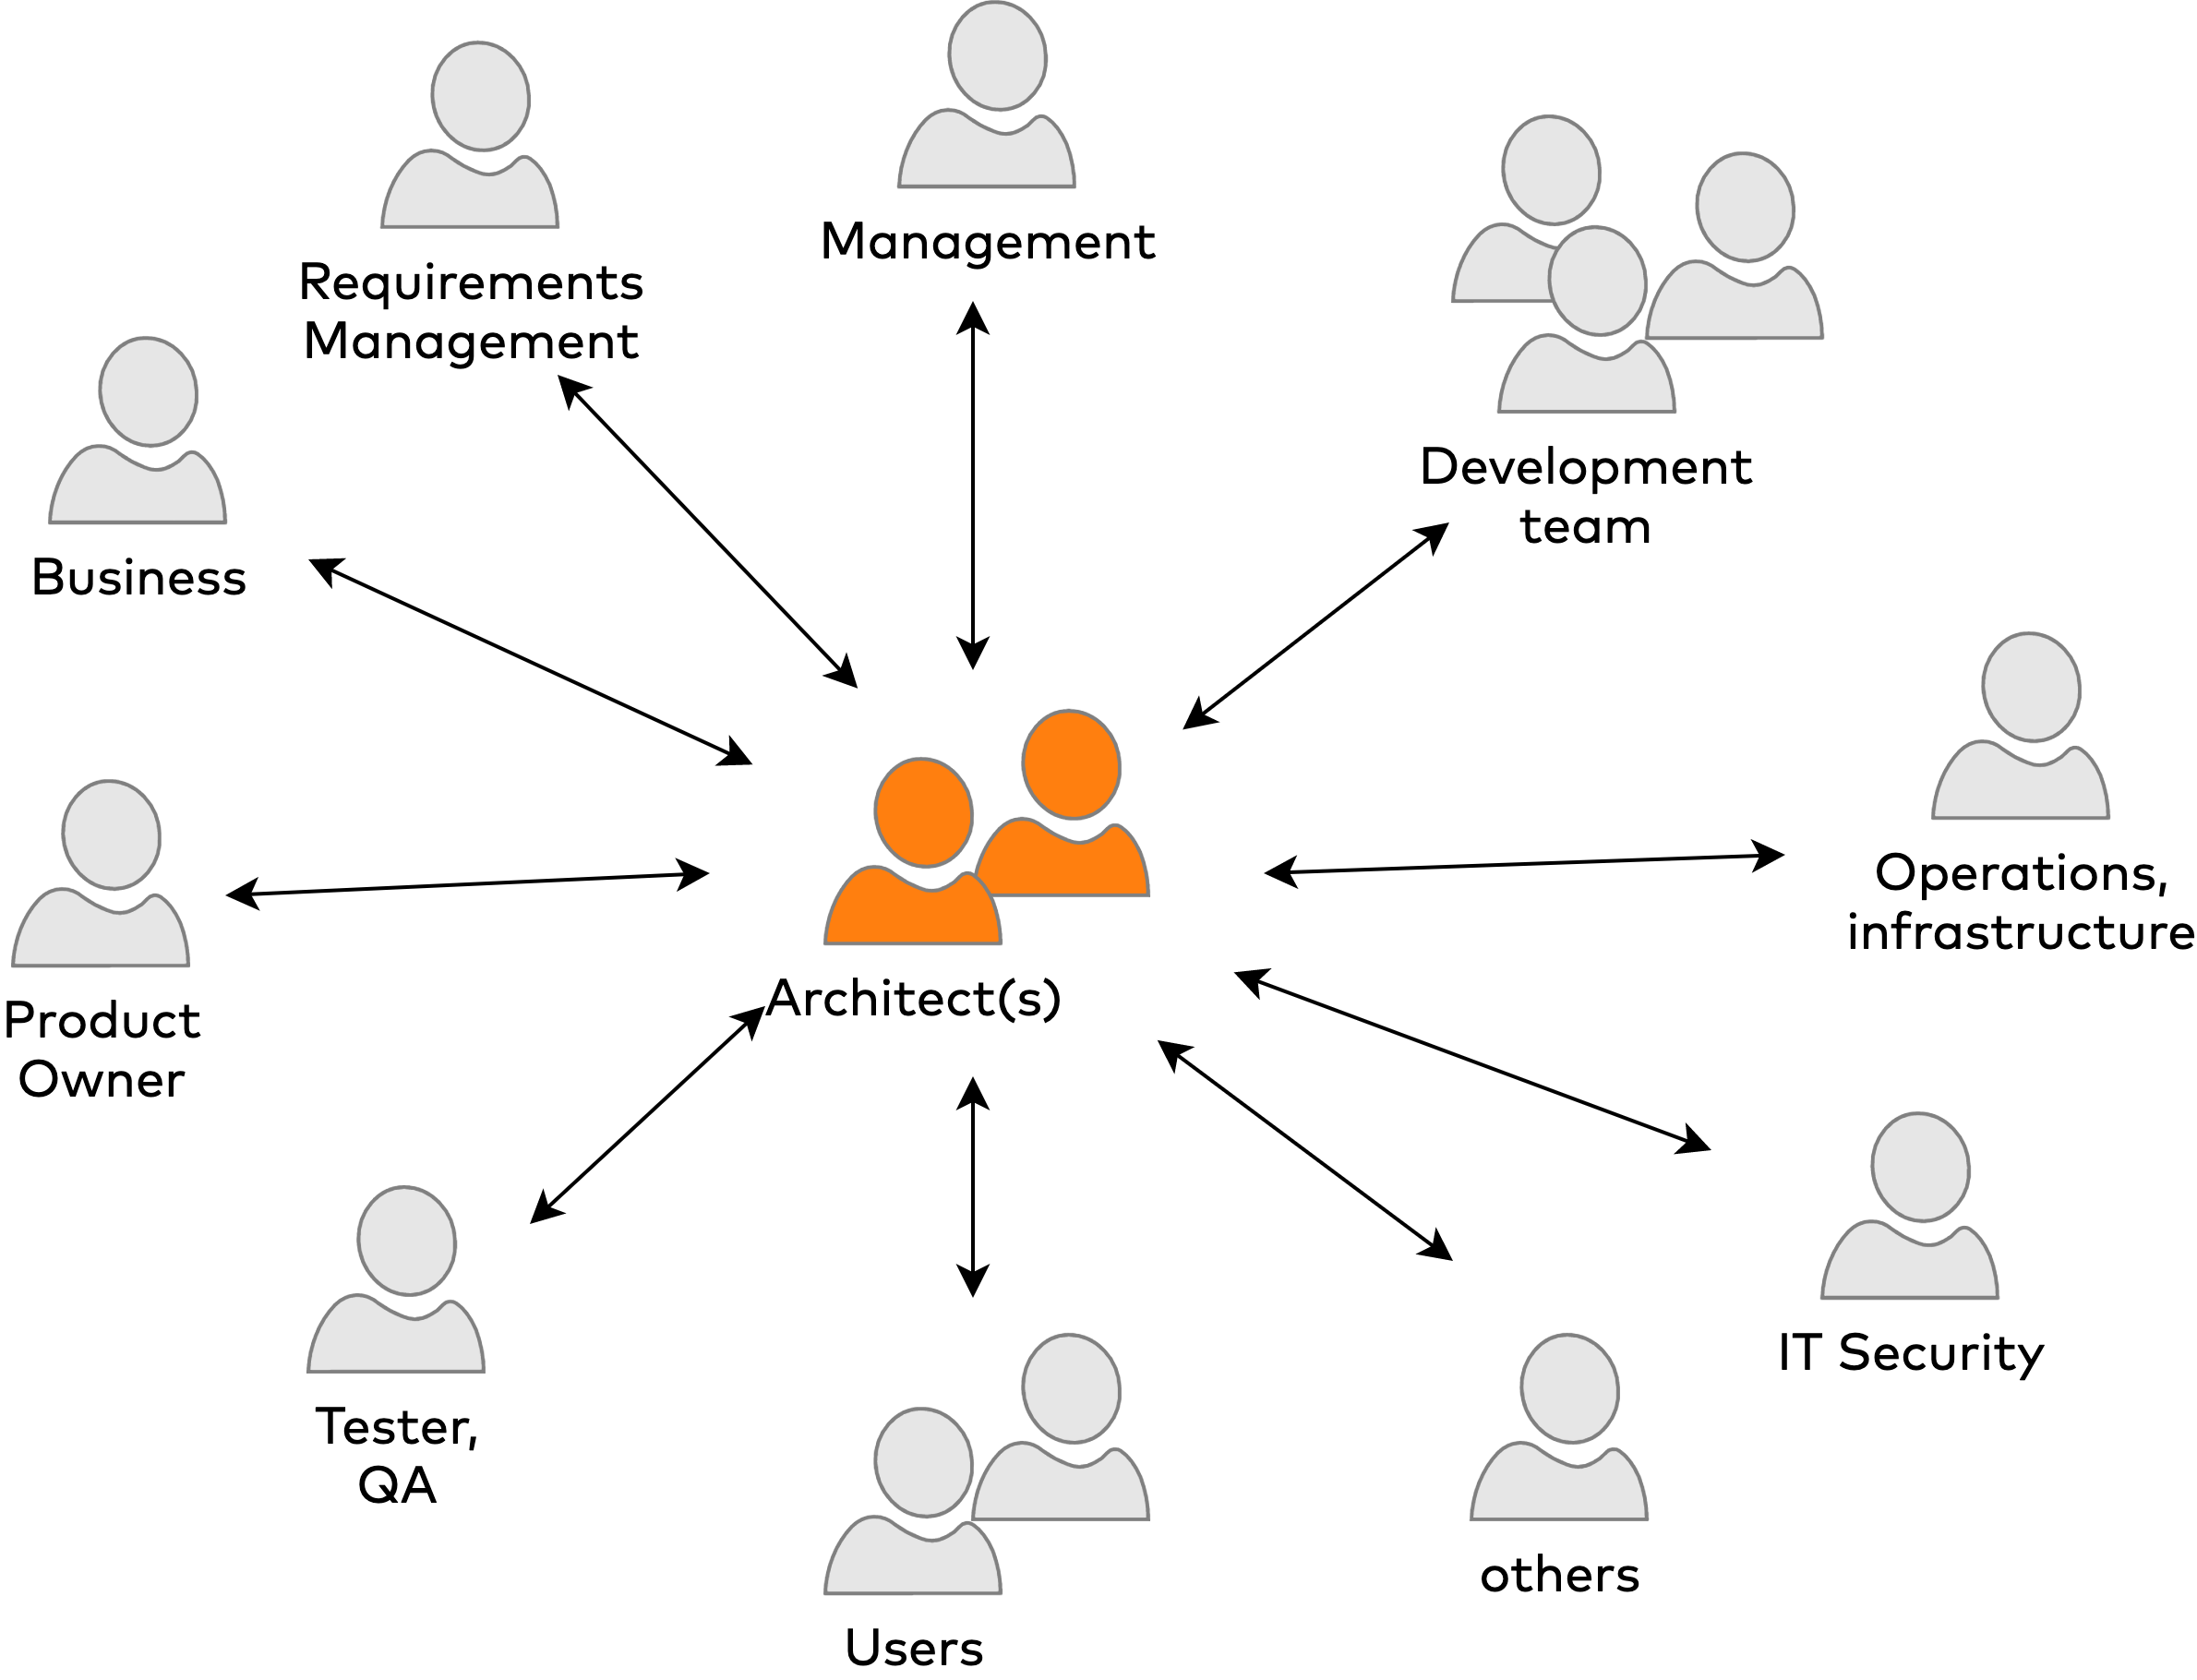 Architects communicate with many stakeholders